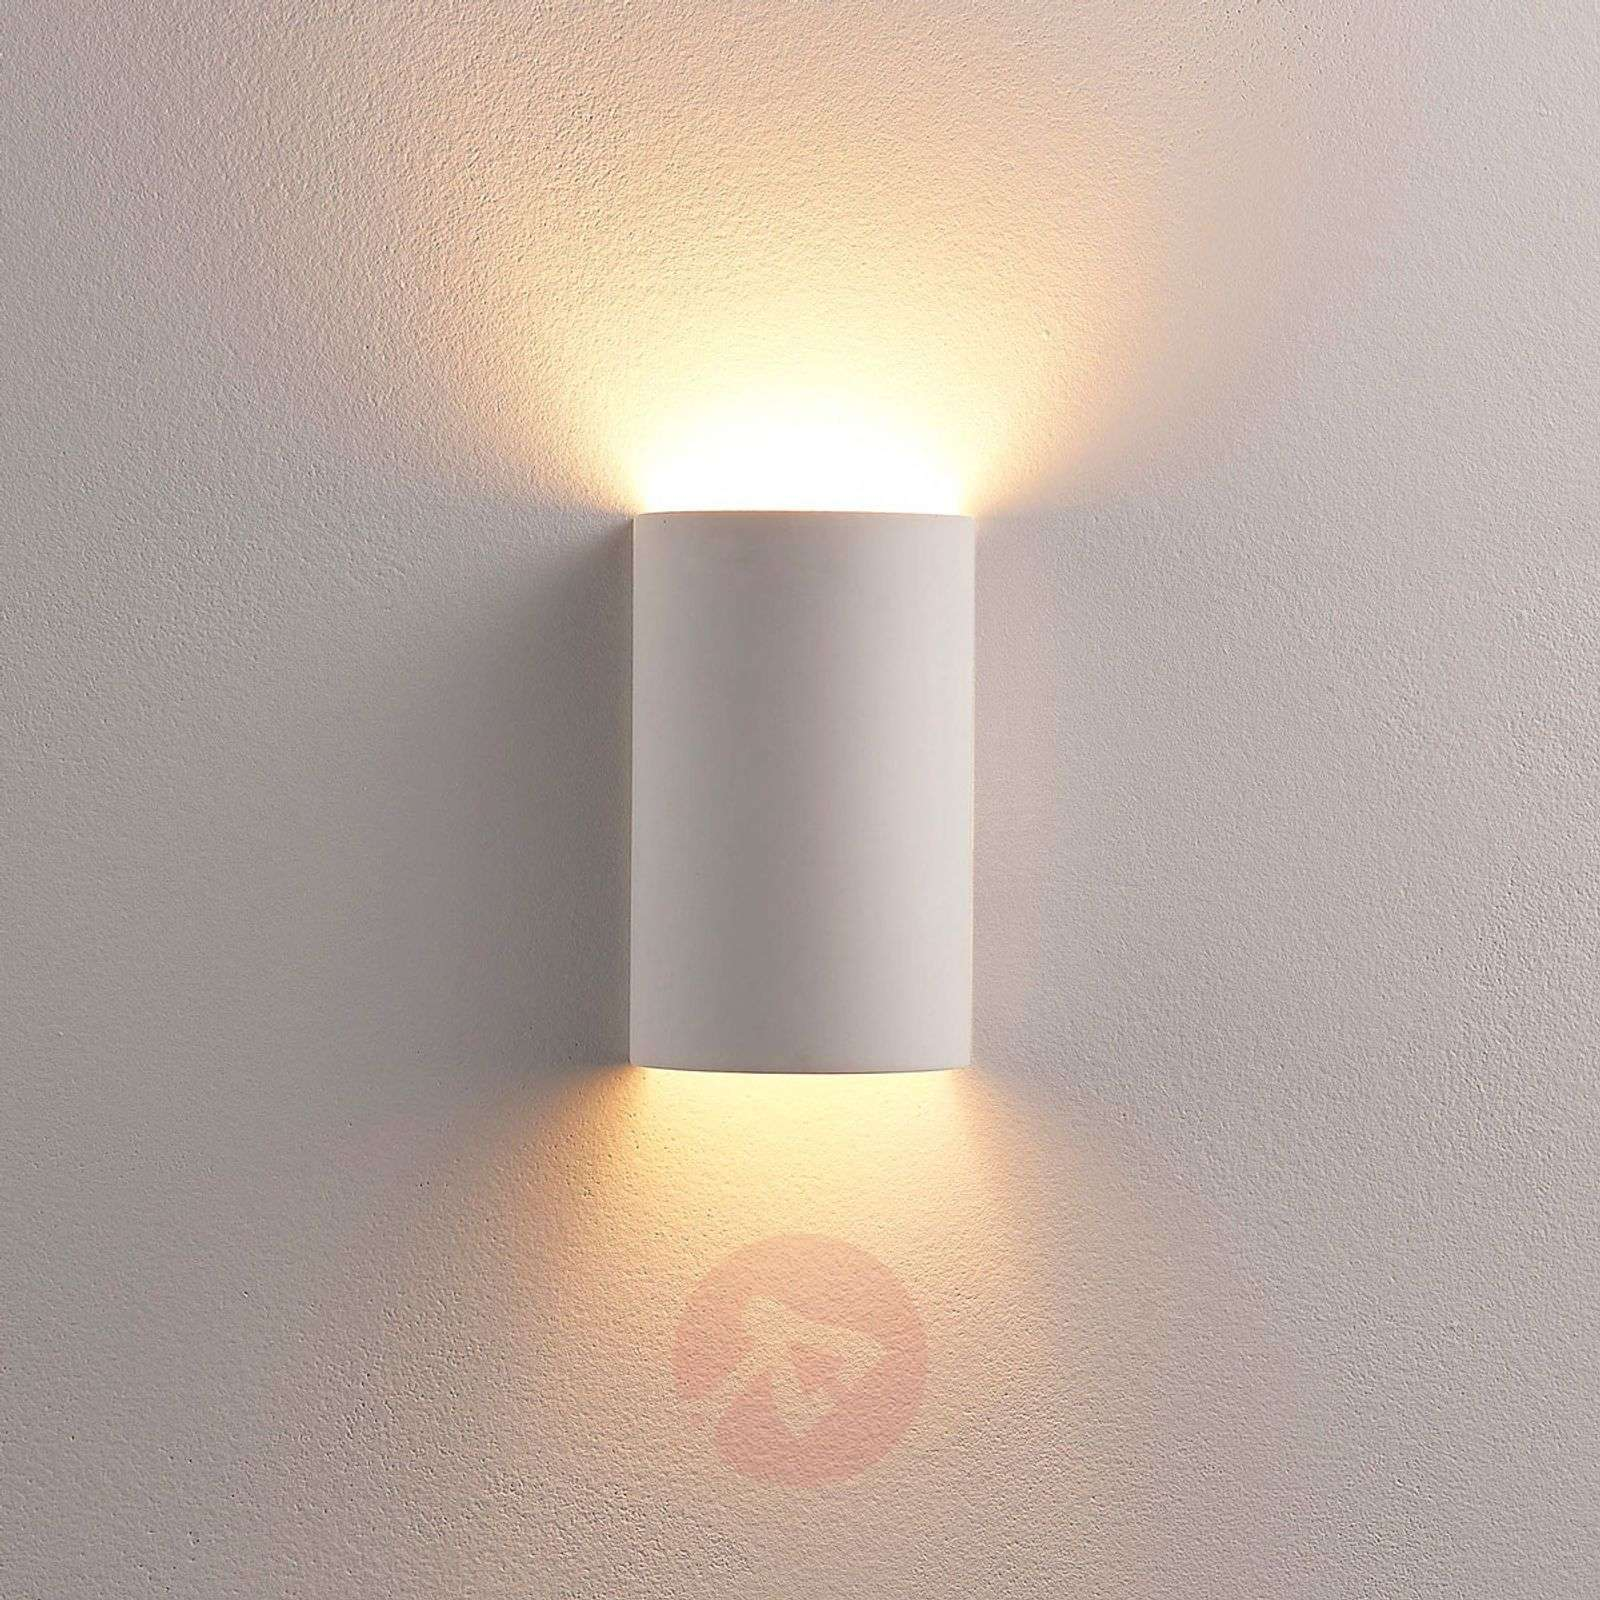 Semi-circular LED plaster wall lamp Colja-9621341-02